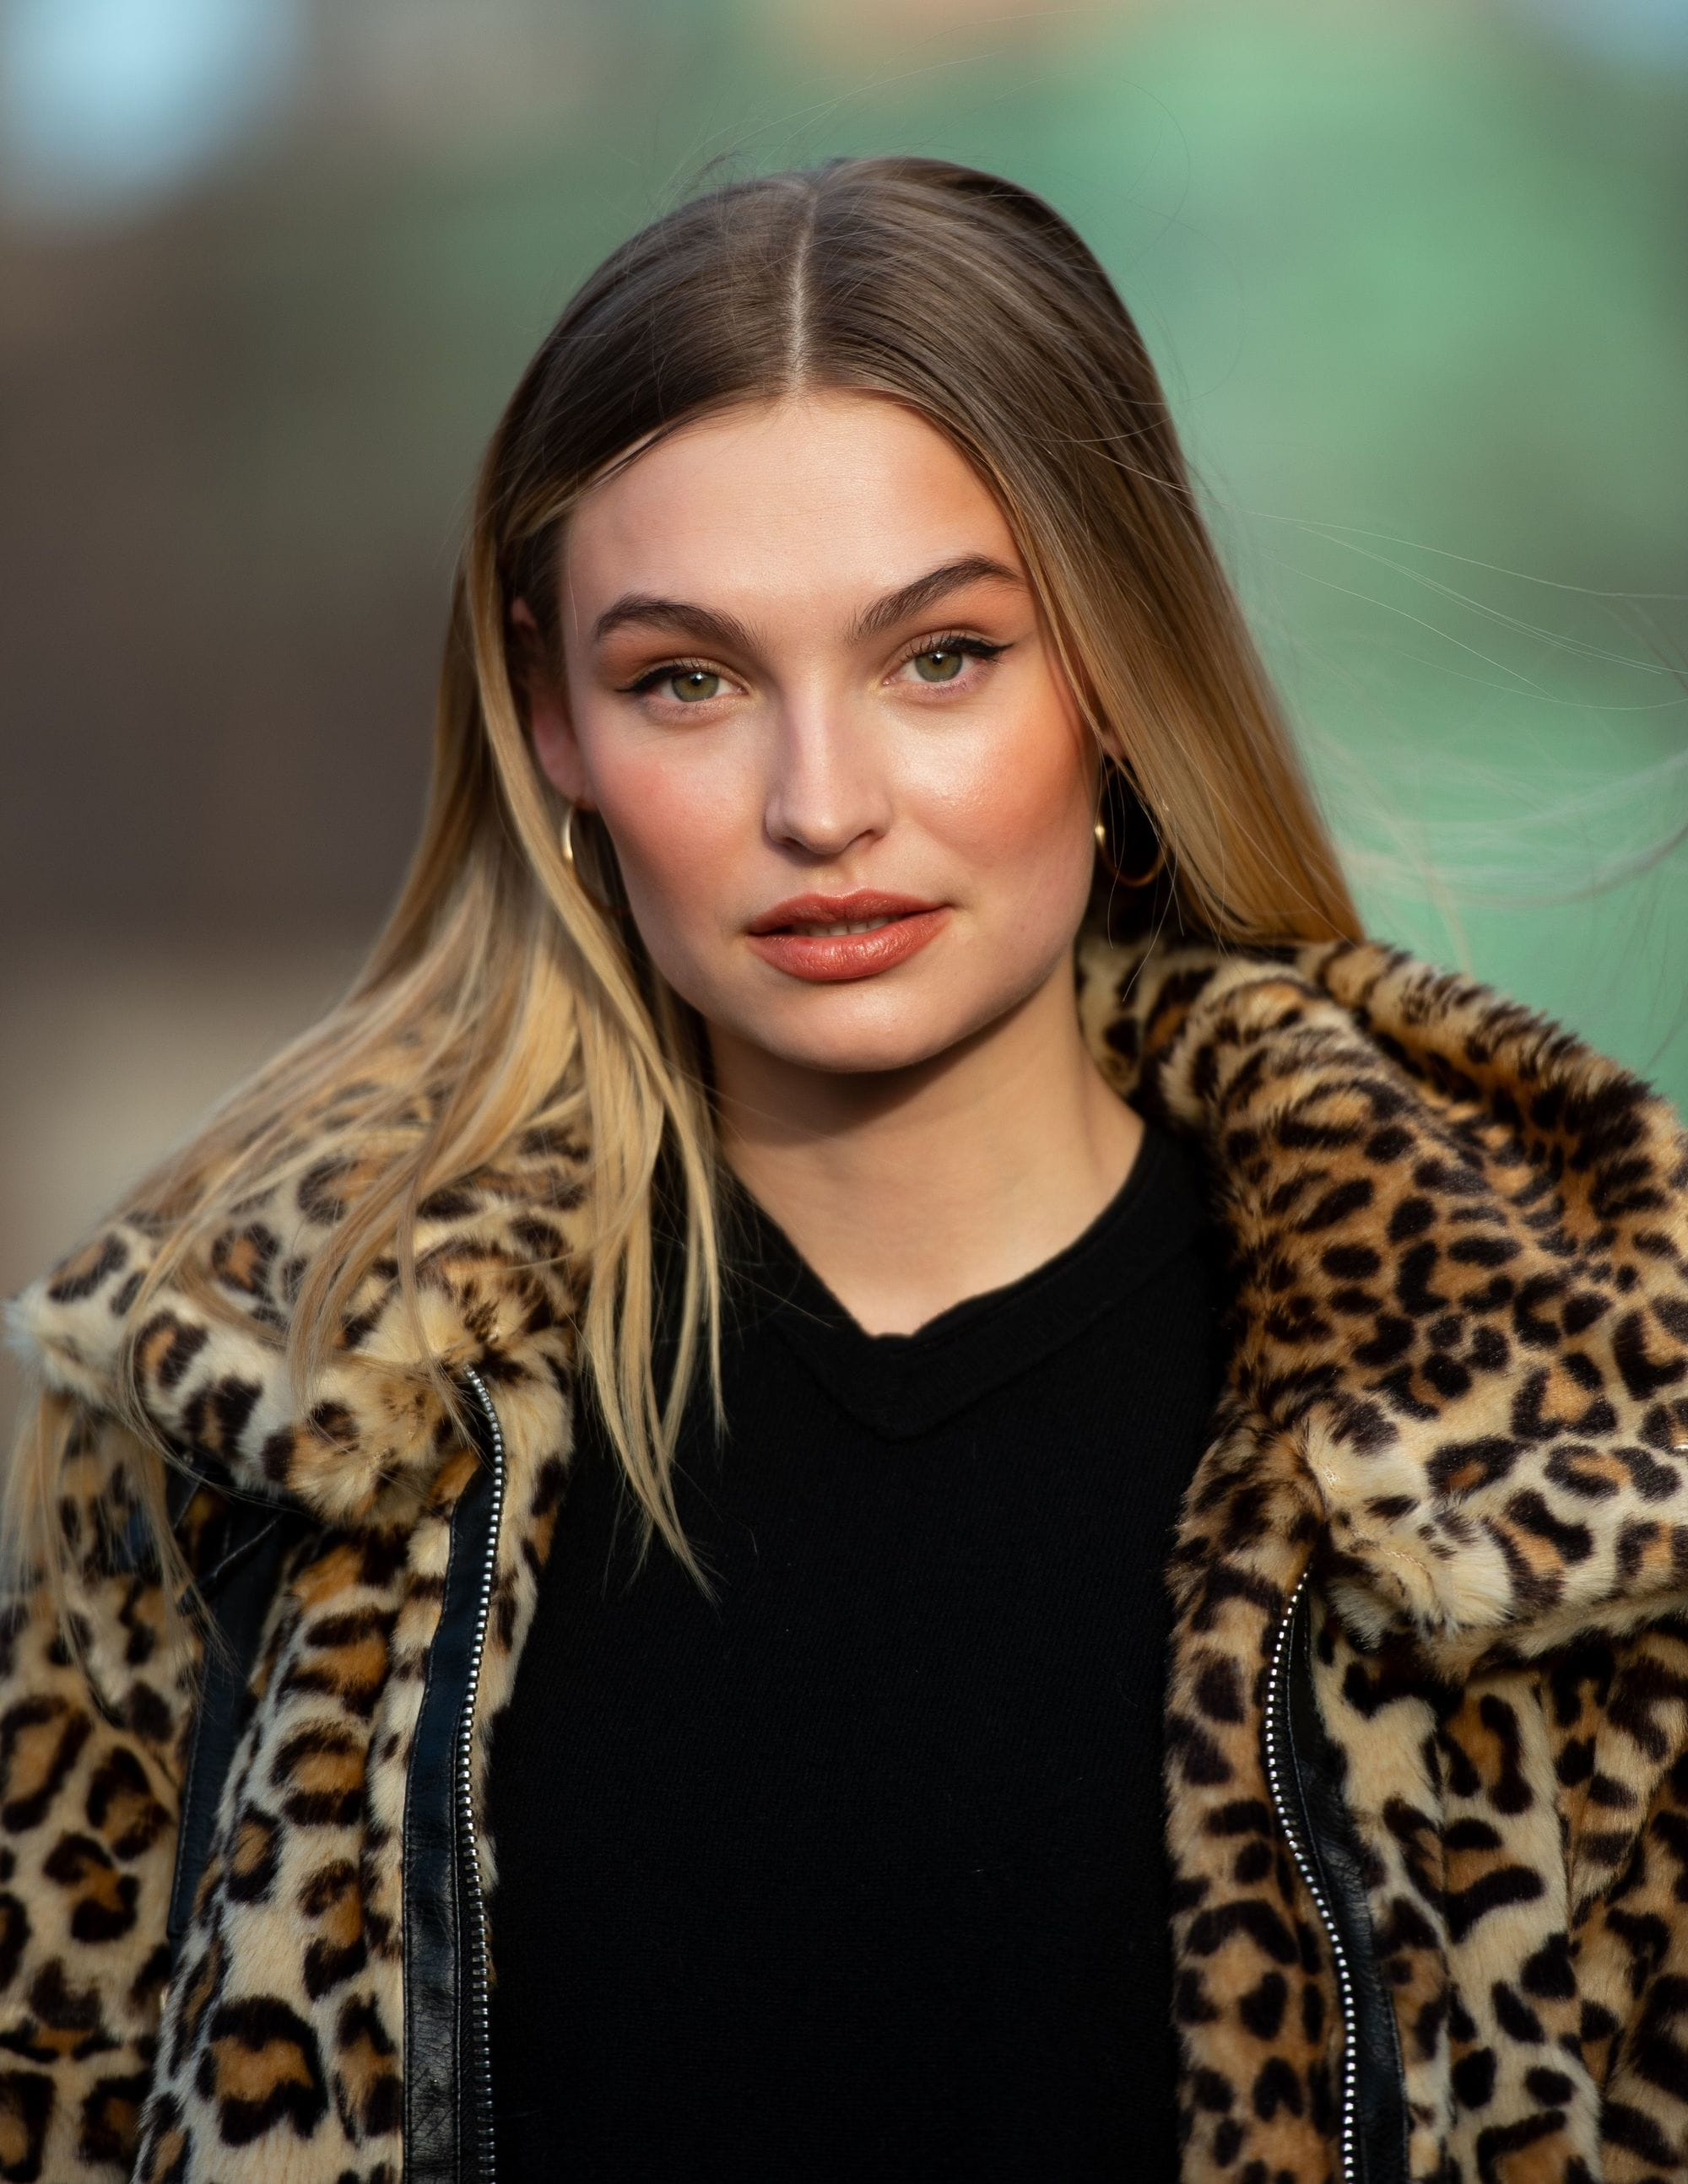 Spring hair colours: Shot of model with brown to blonde melt hair, wearing leopard print jumper wearing black top